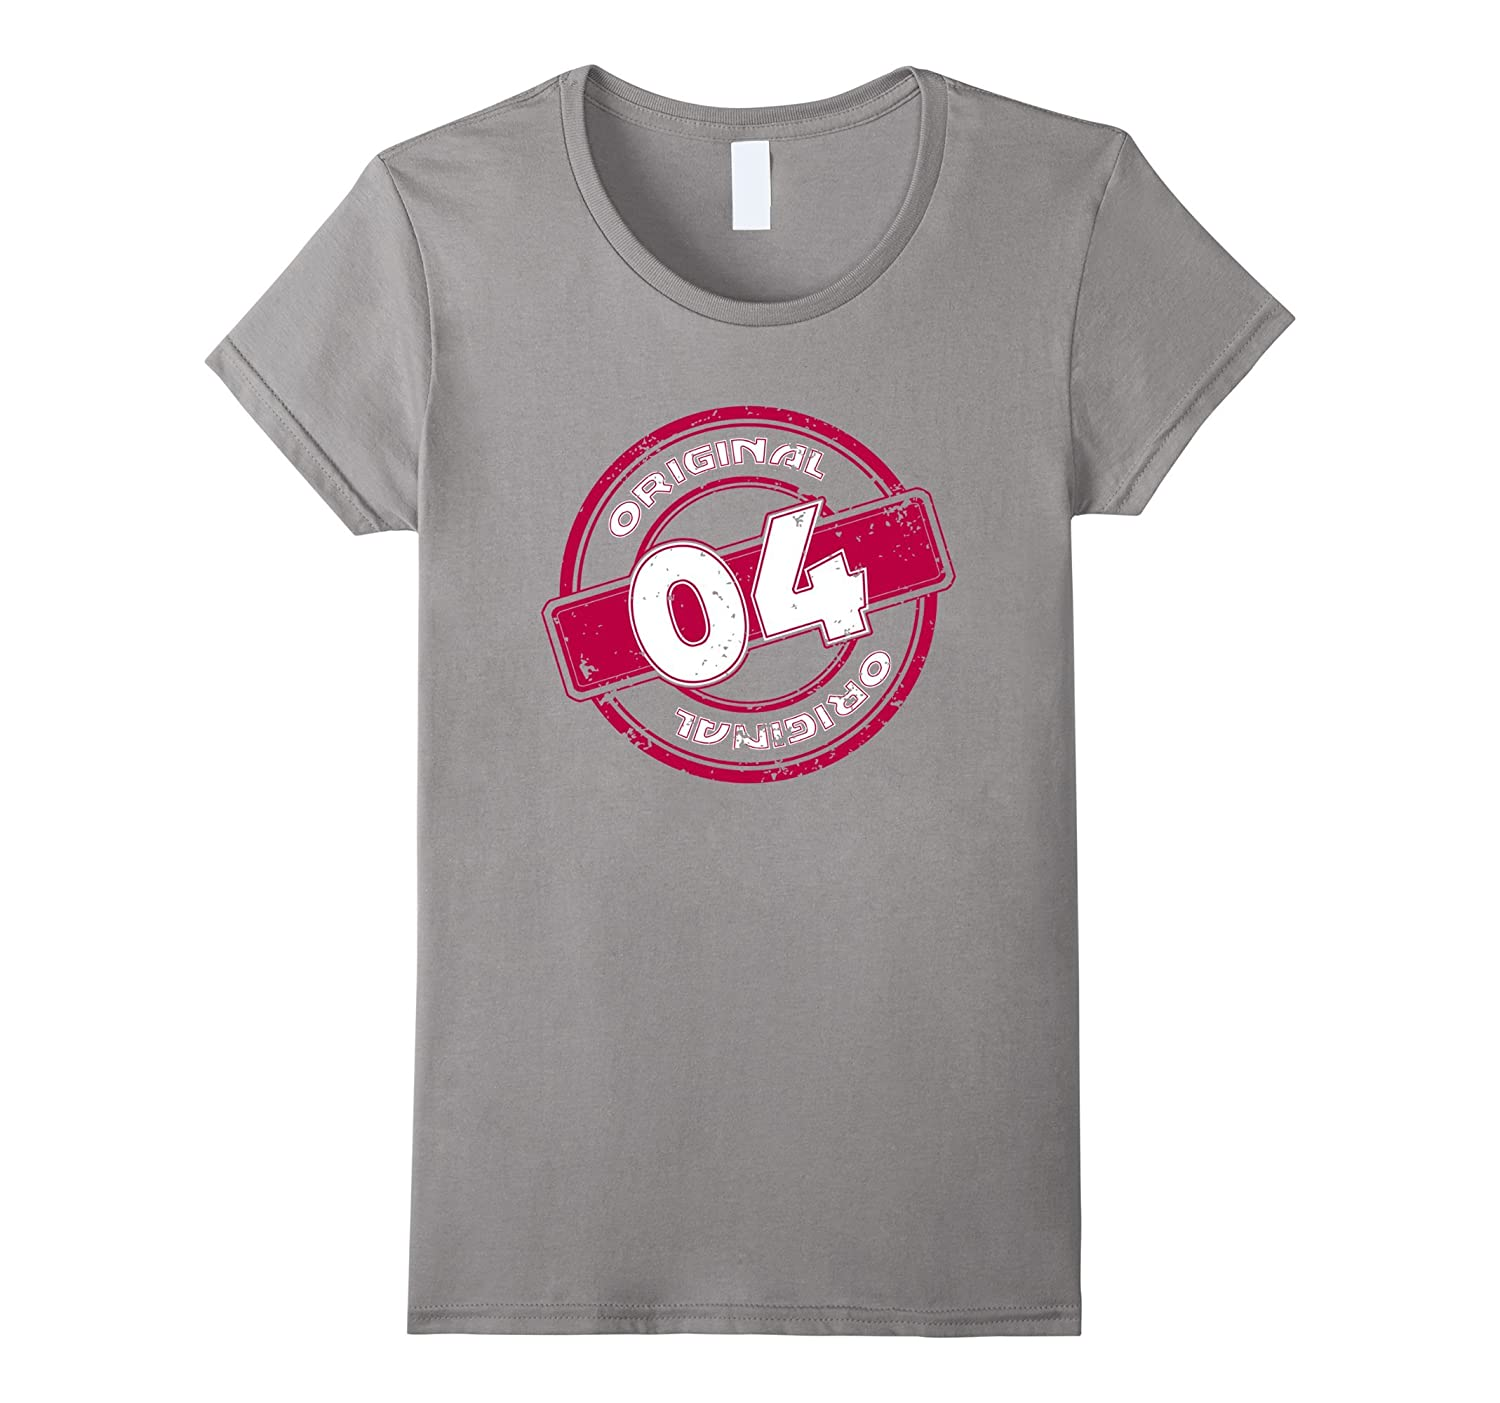 2004 T shirt 13th Birthday Gift Age 13 Year Old Girl T shirt